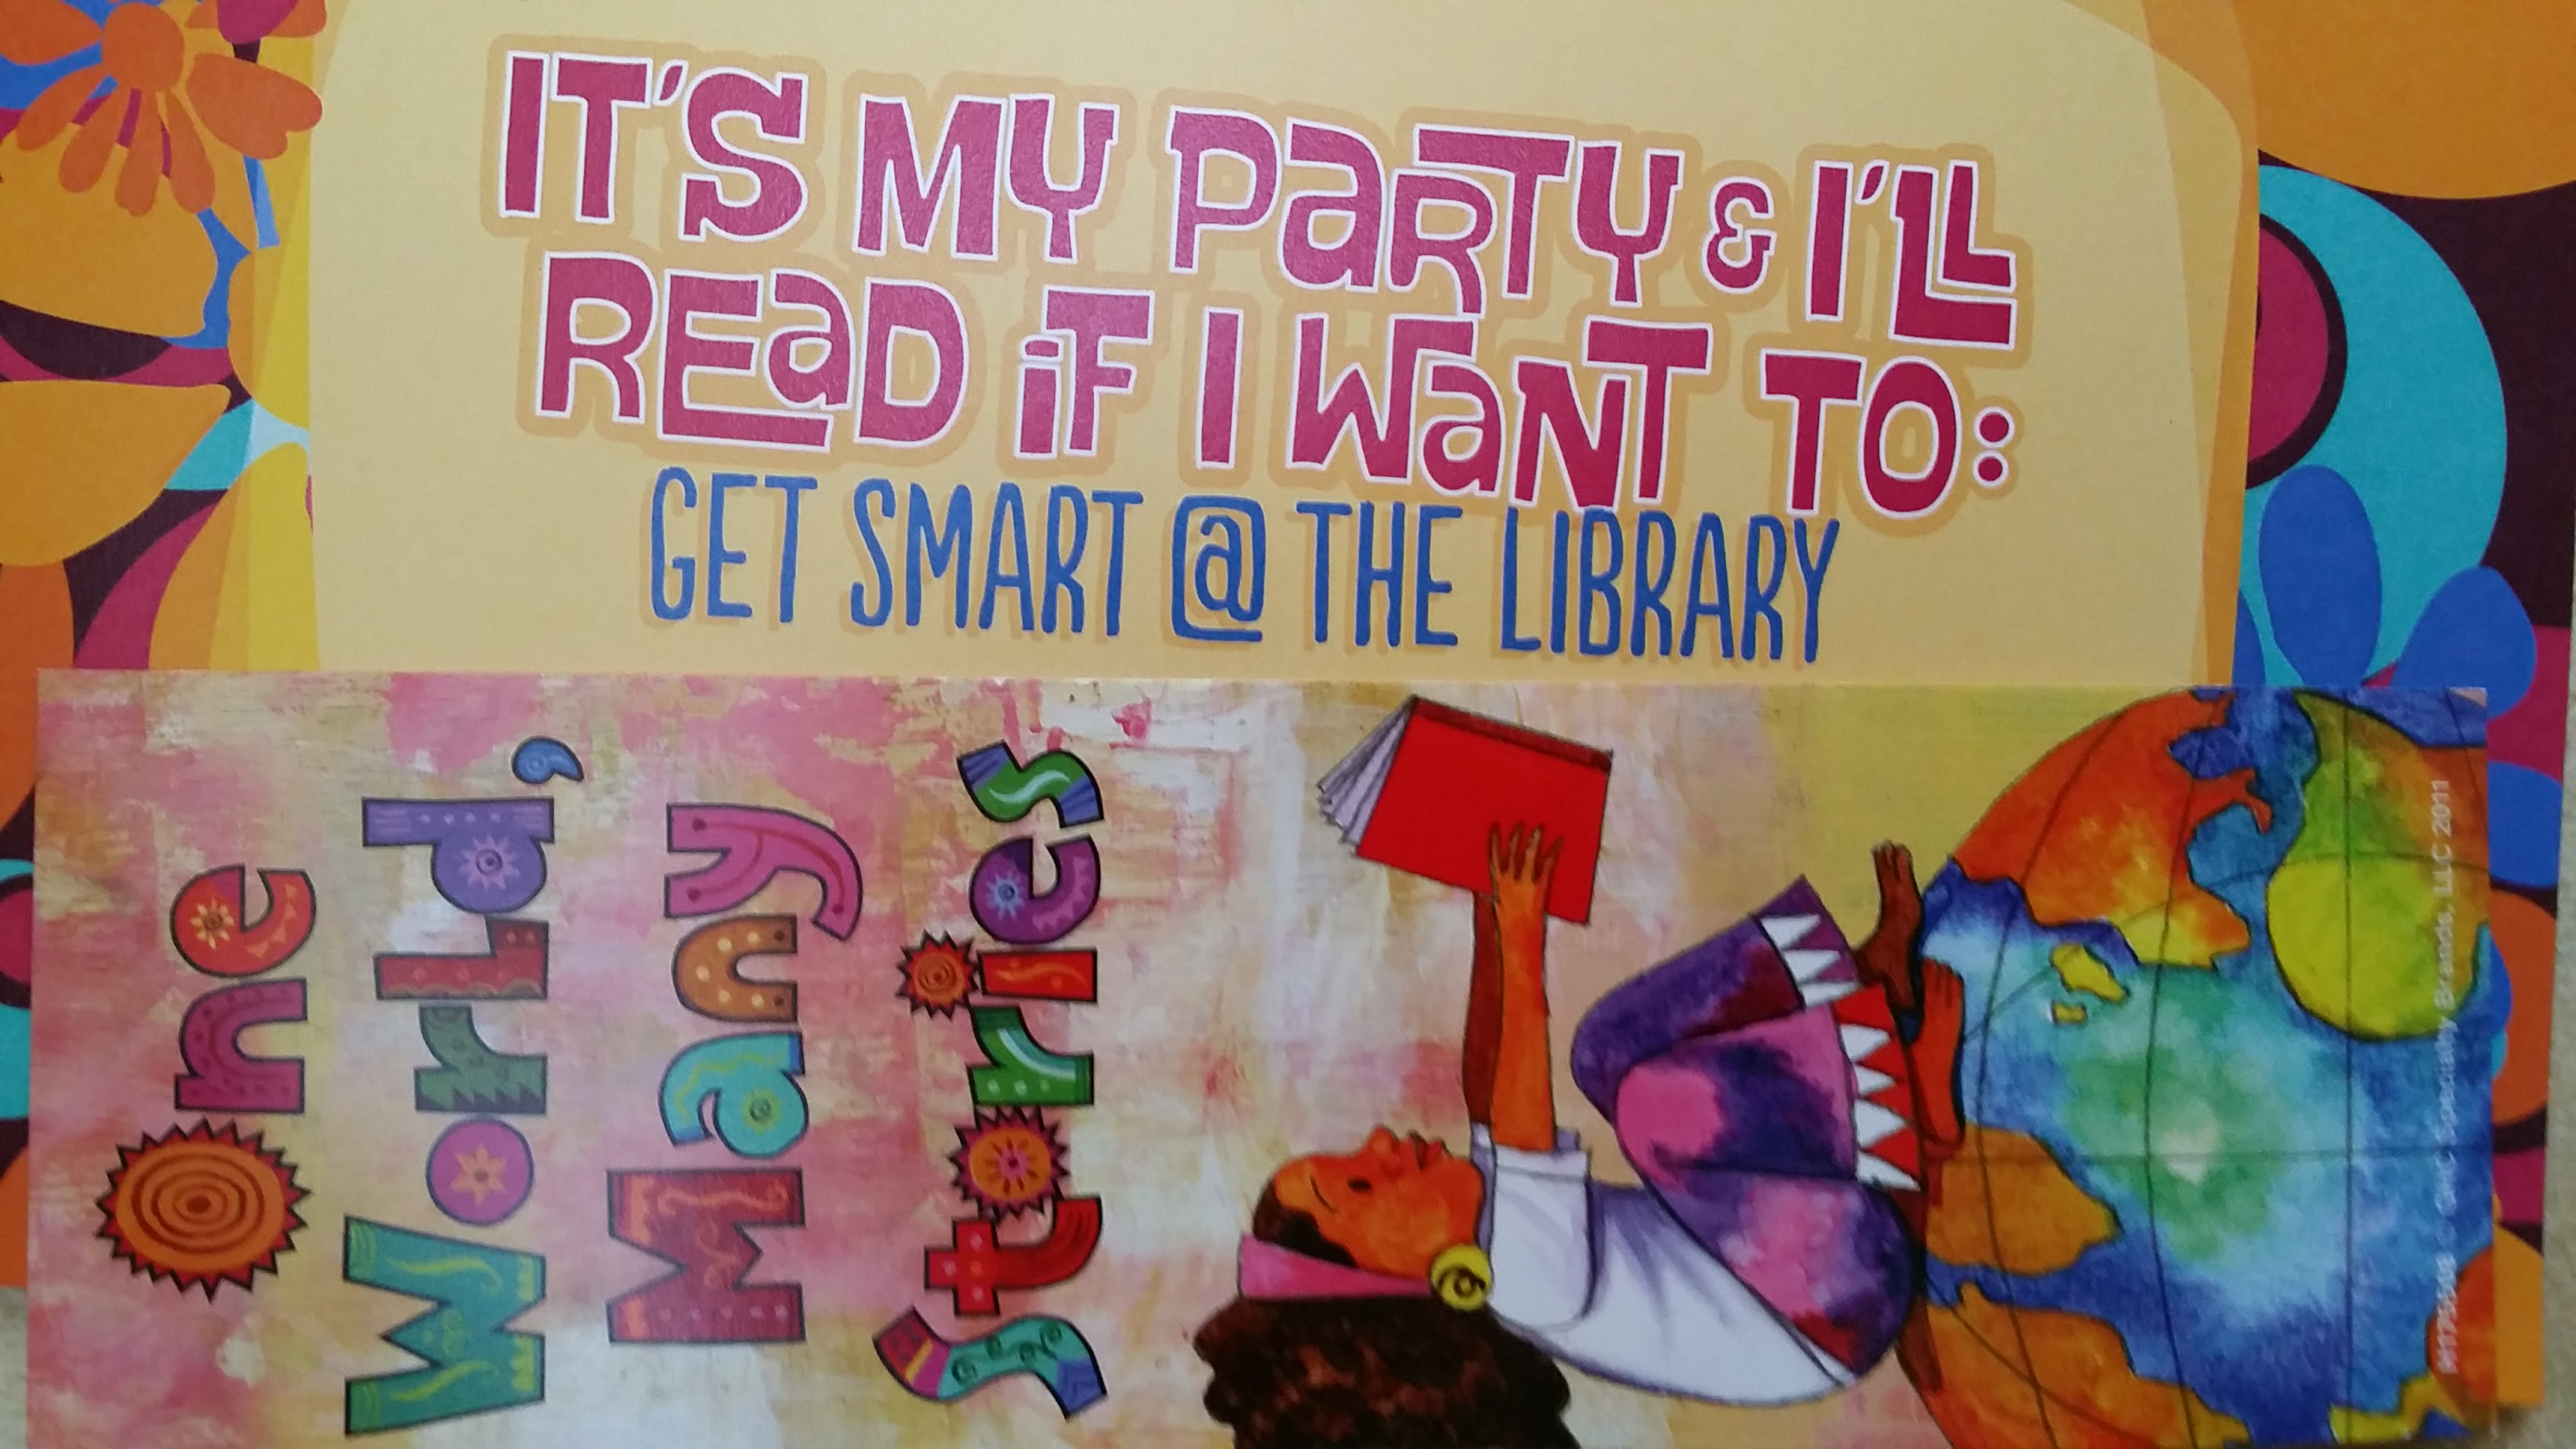 I Geek Live Oak Public Libraries' Message Book Marks